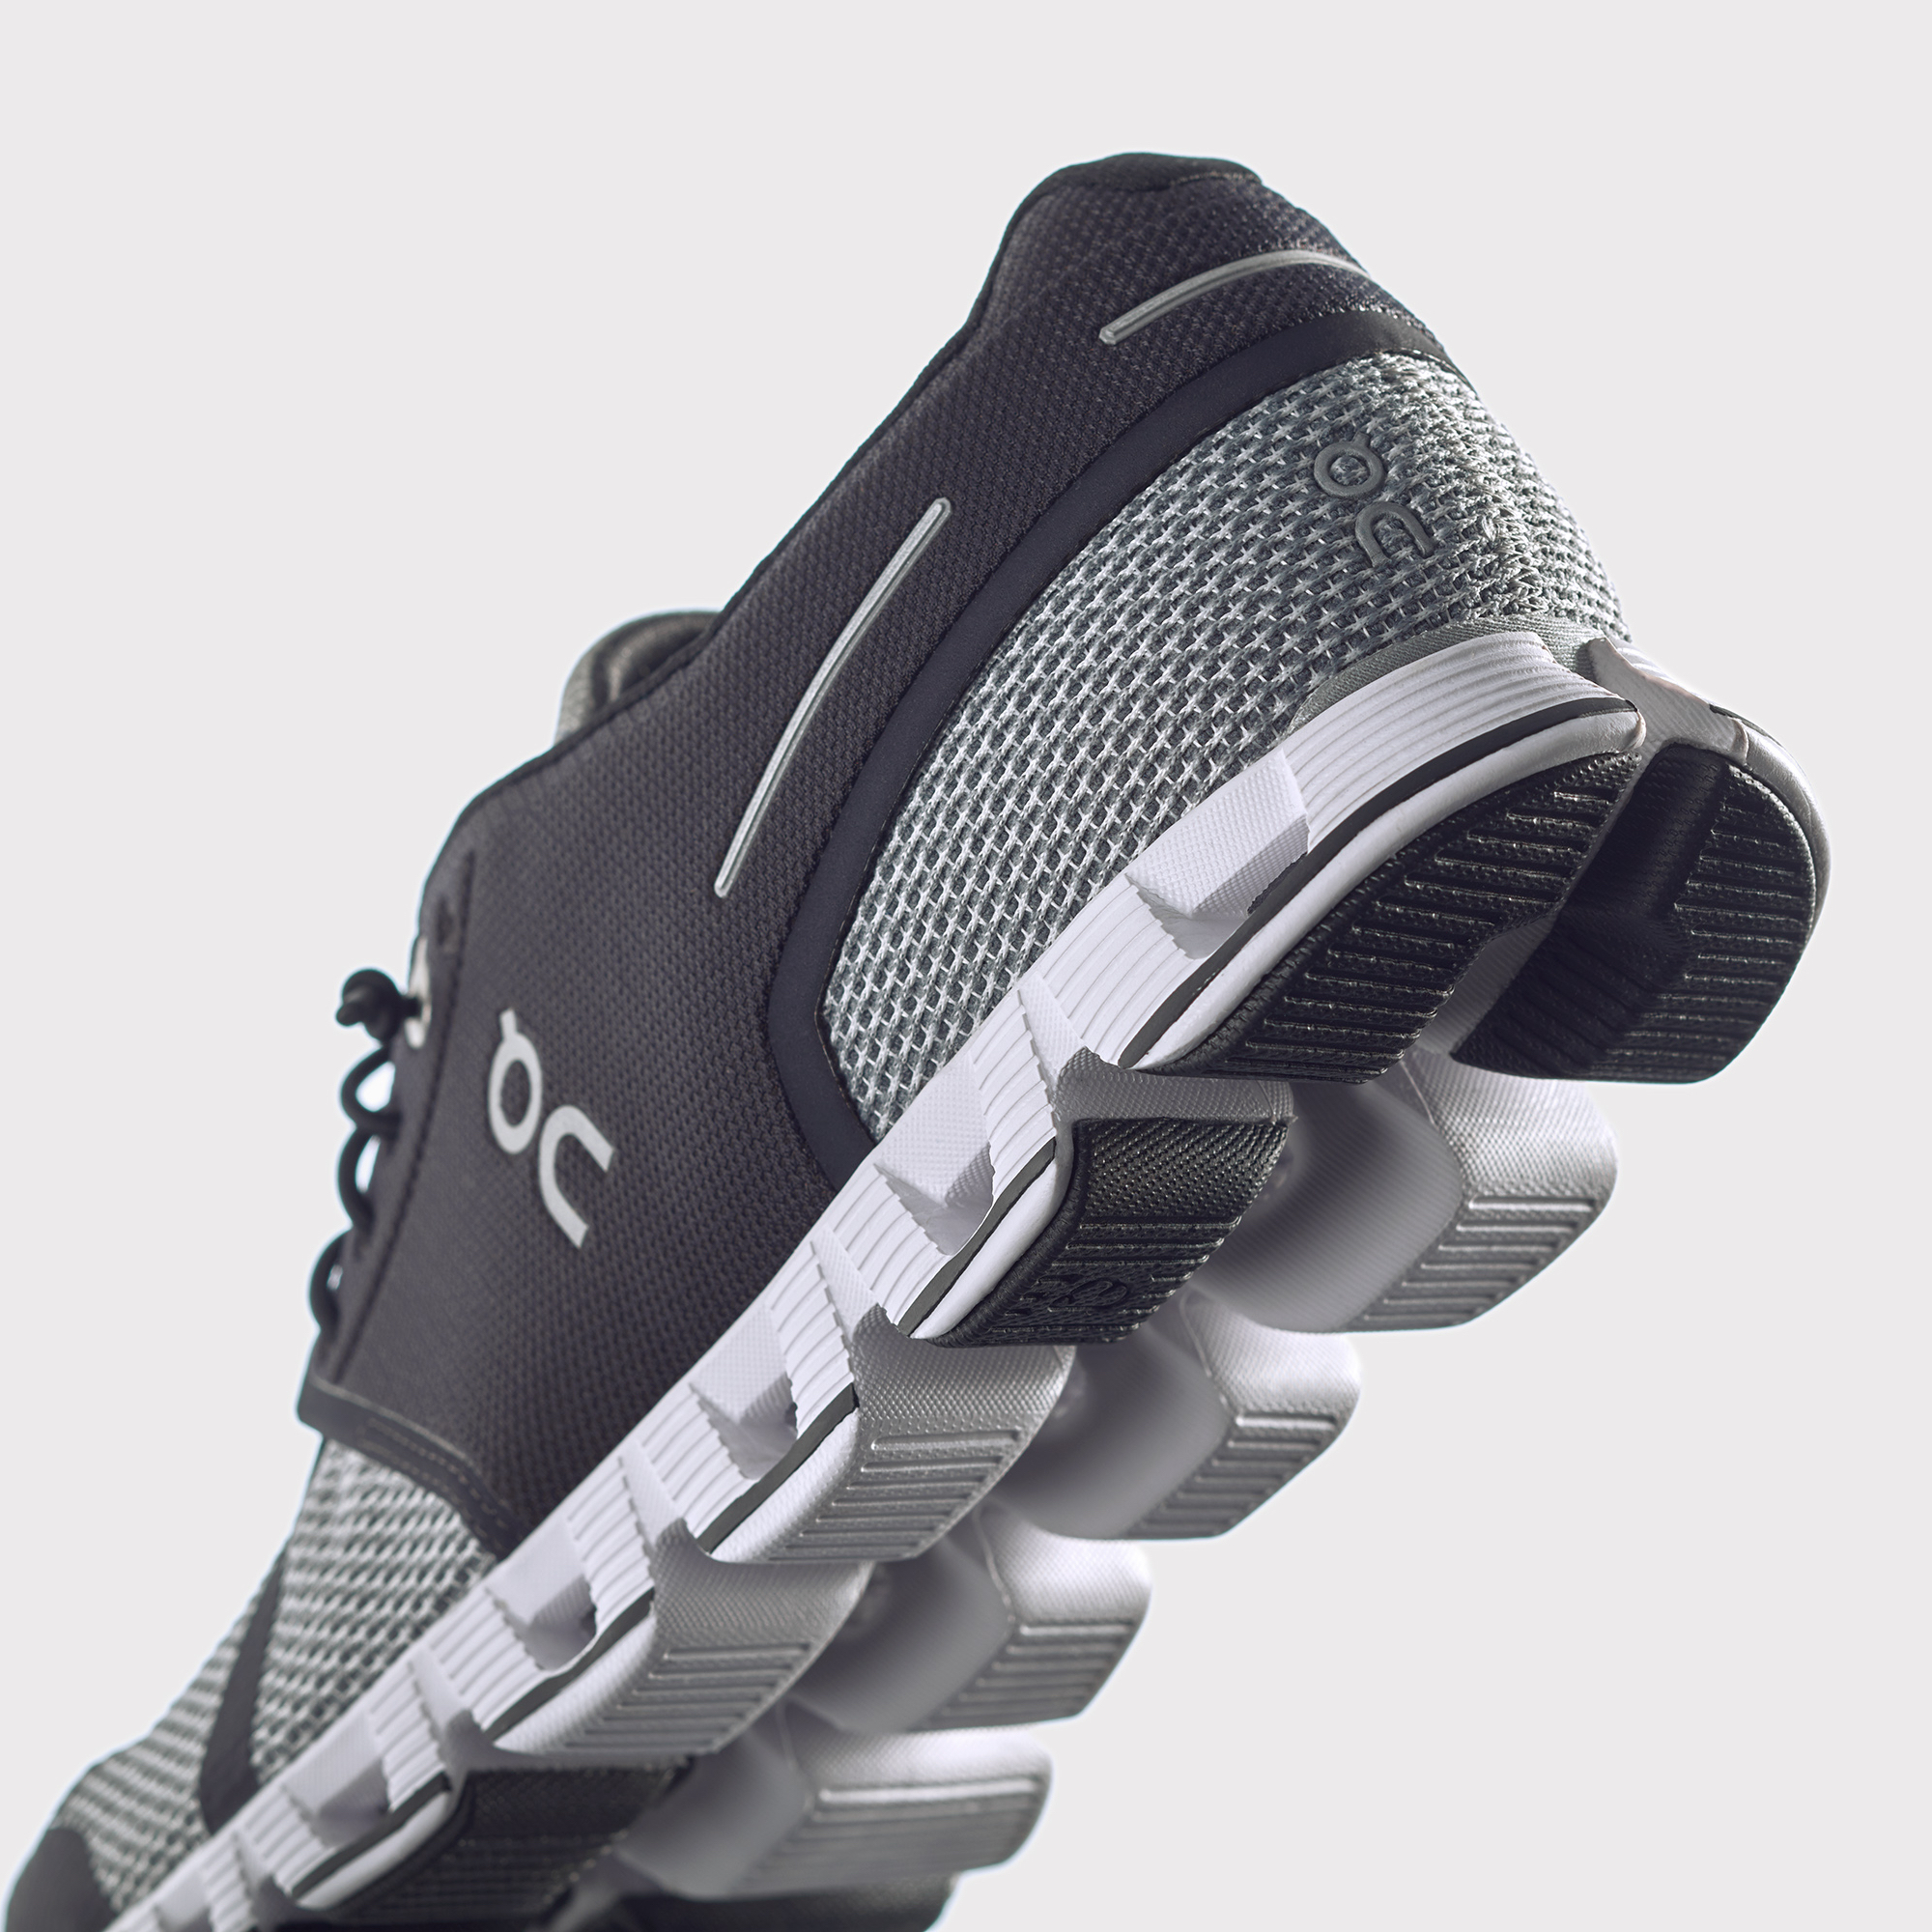 Cloud - the lightweight shoe for everyday performance | On